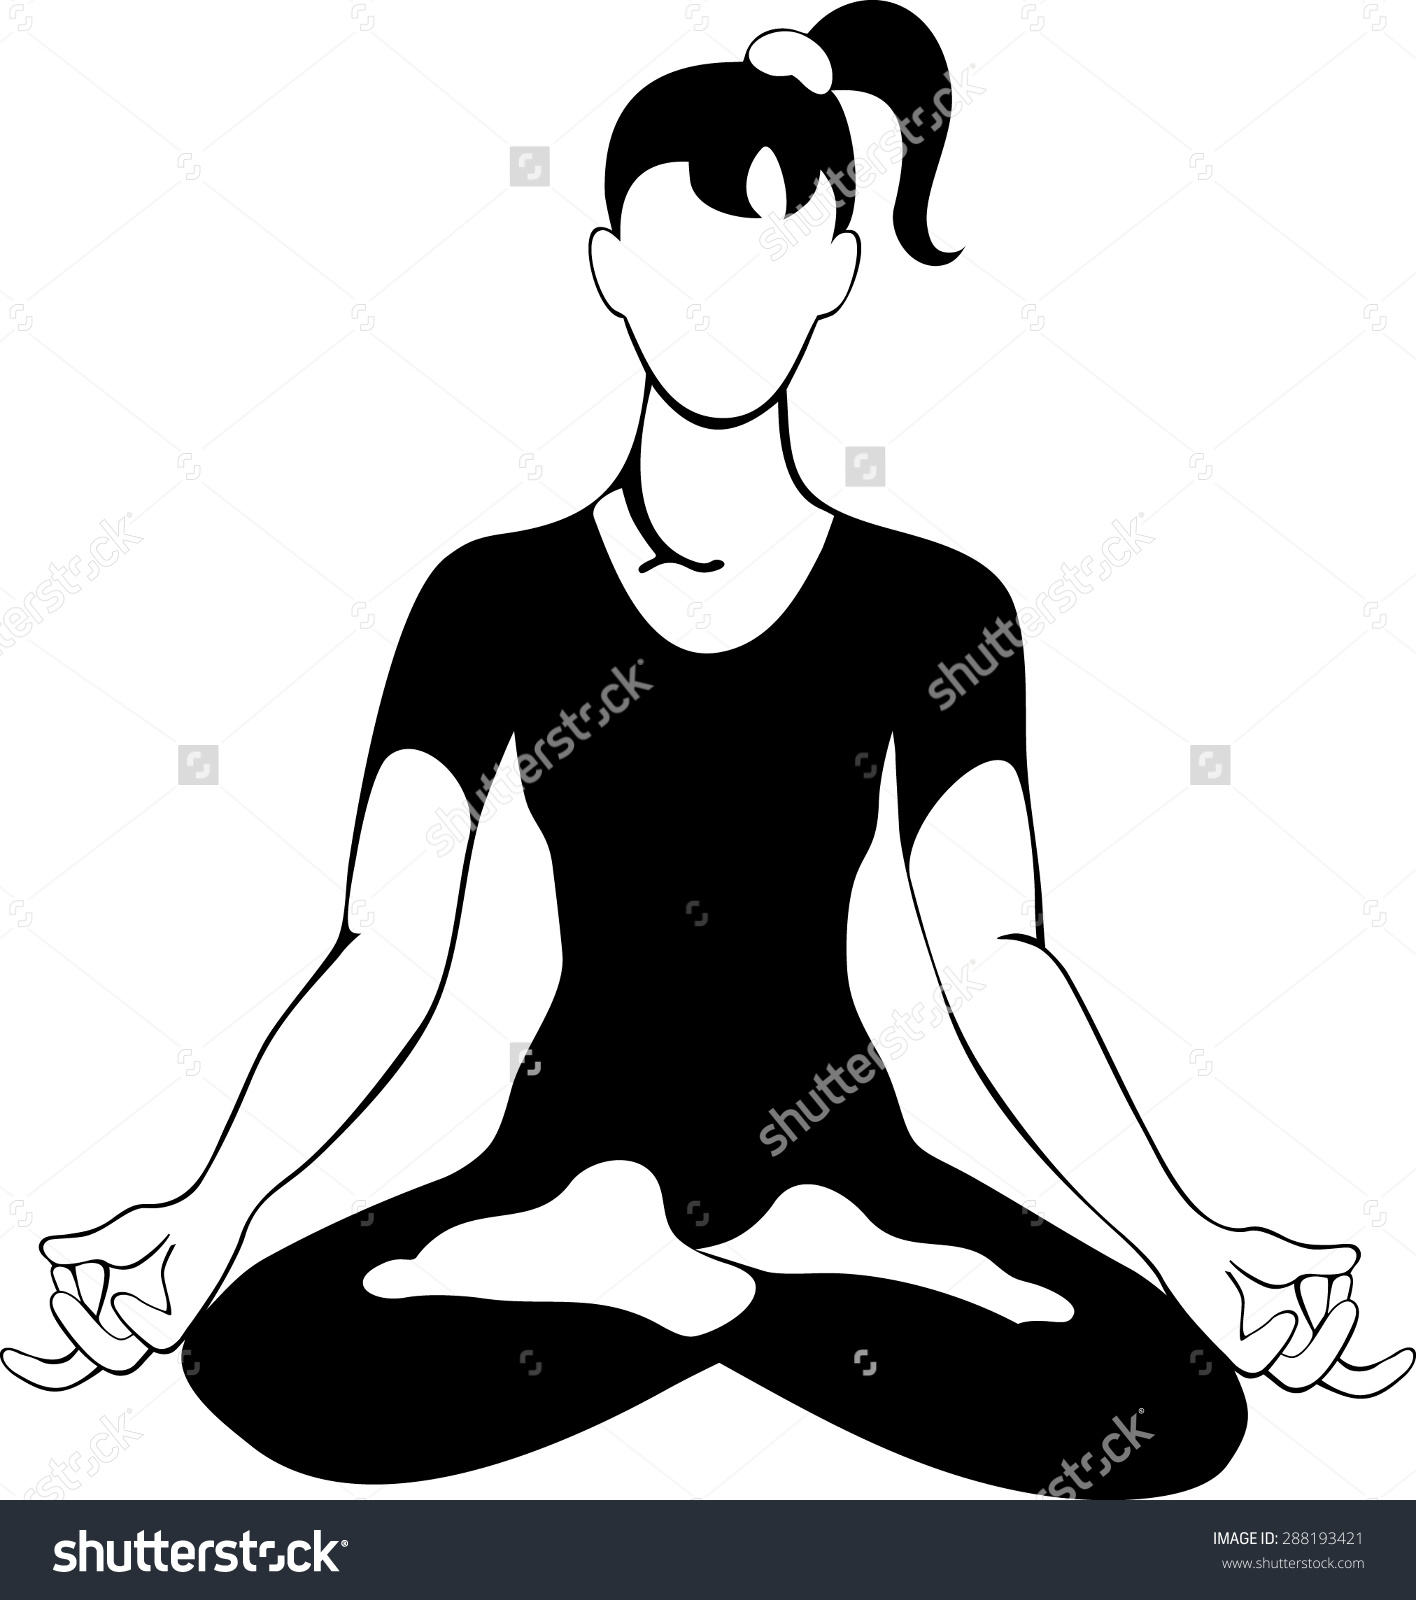 lotus position clipart #3